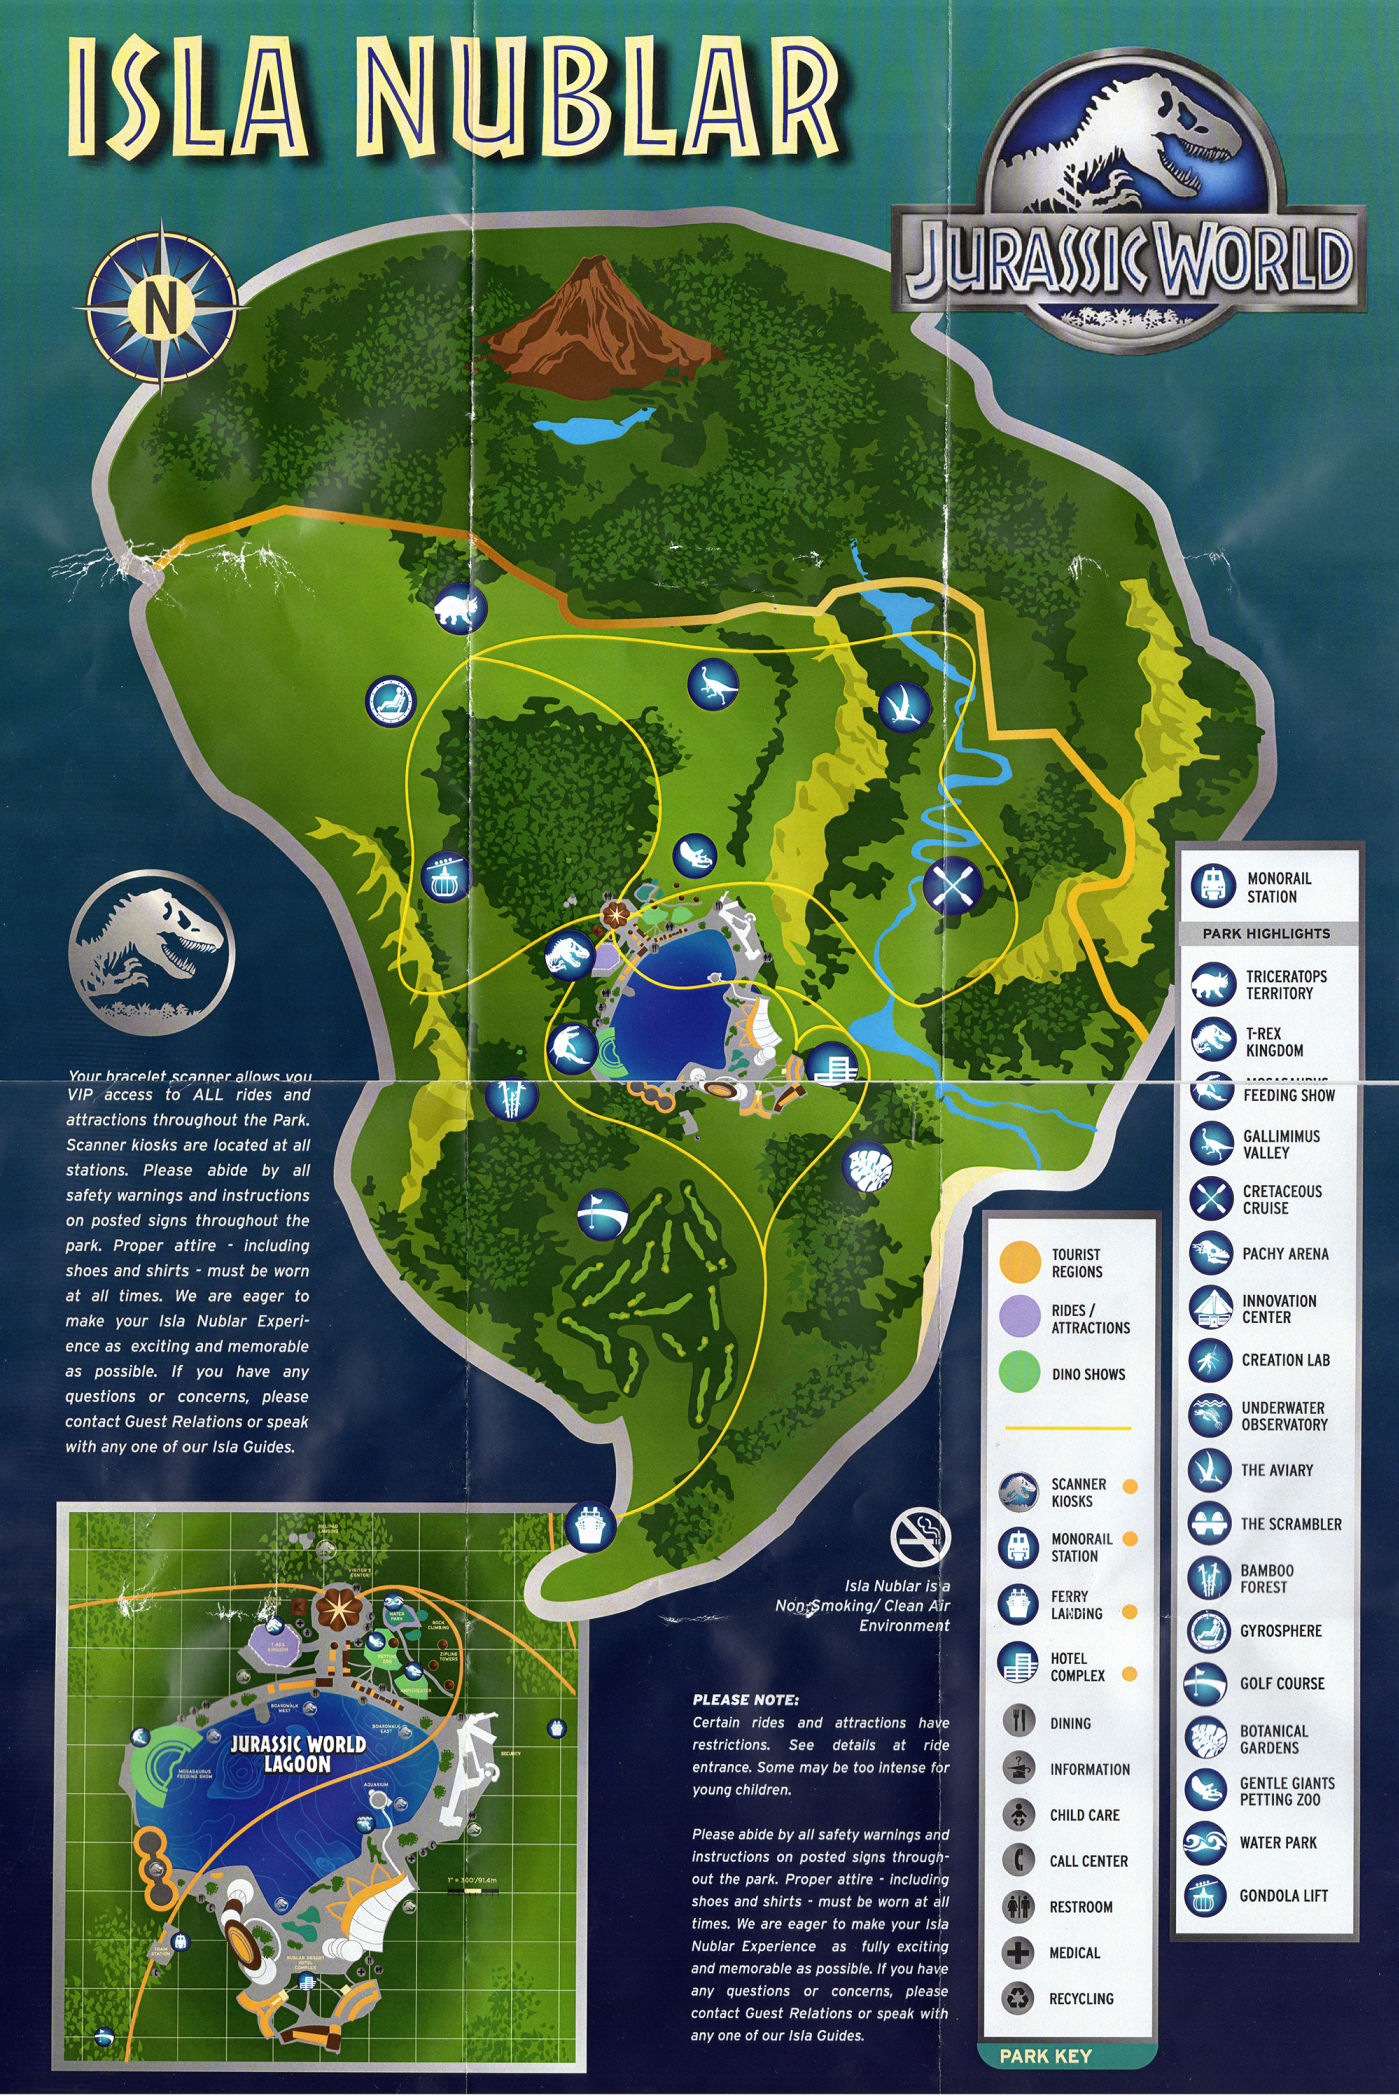 Image jurassic world map fullg jurassic park wiki fandom jurassic world map fullg gumiabroncs Image collections